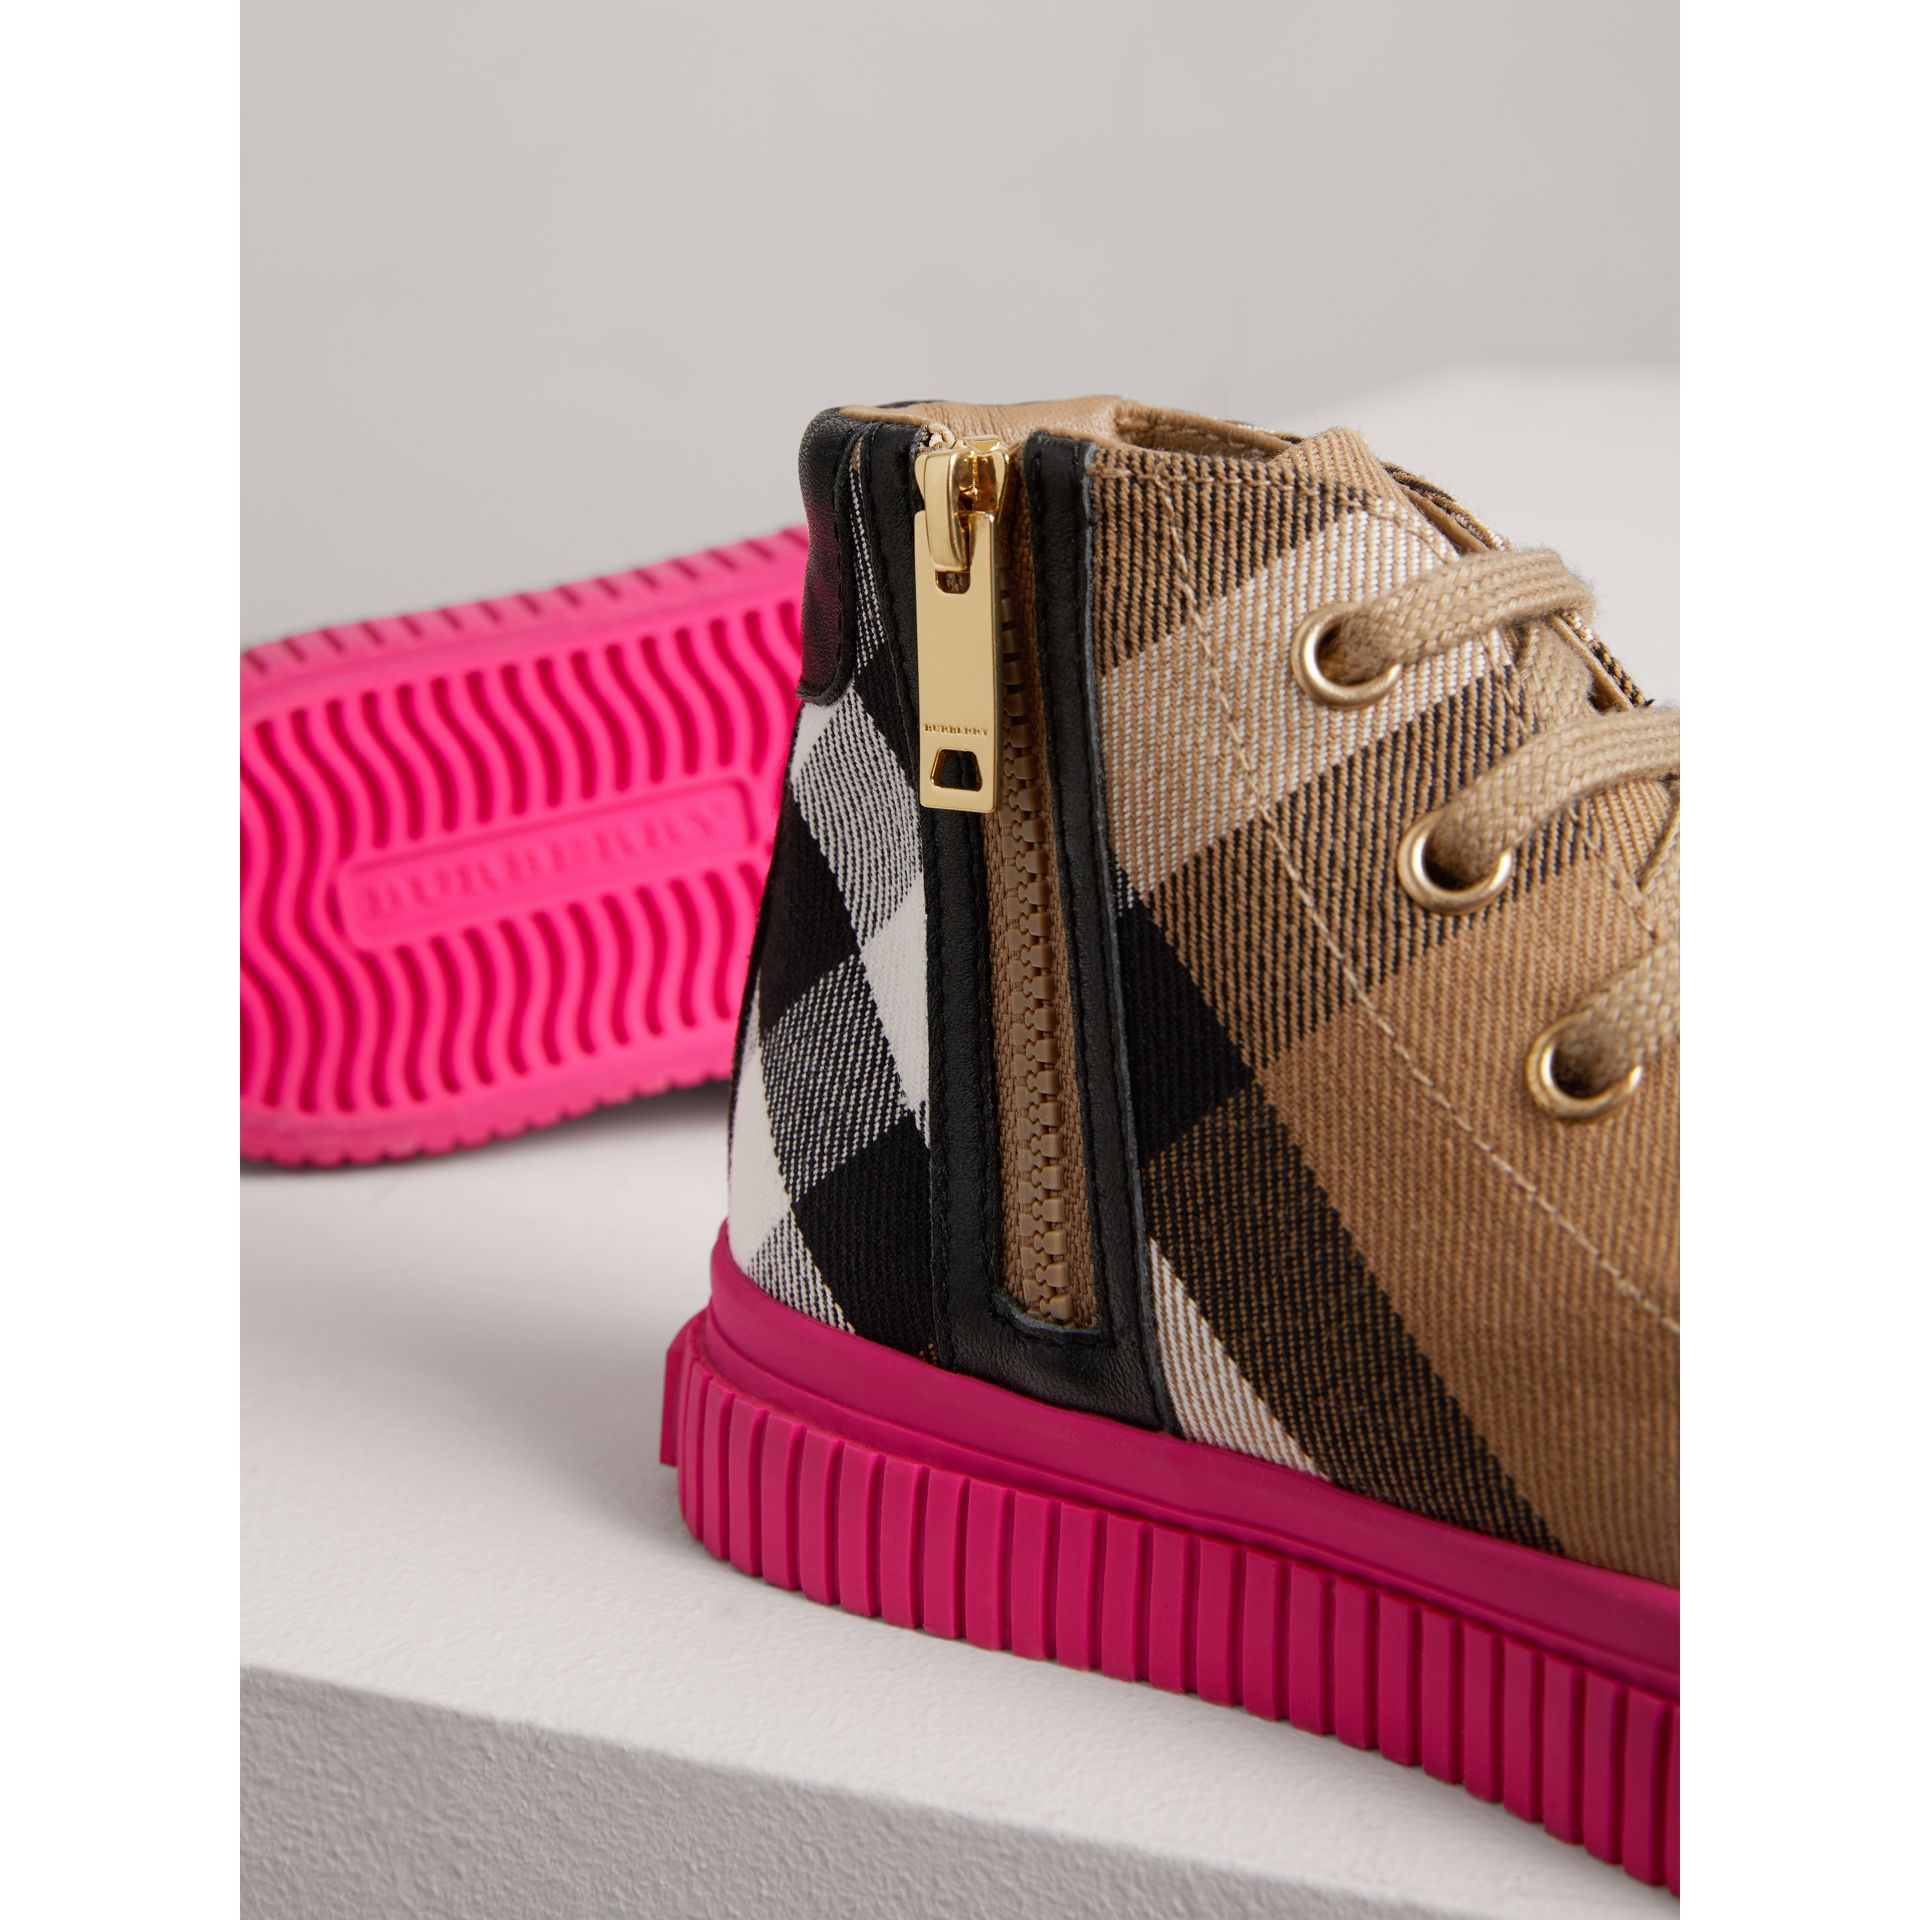 House Check and Leather Trainers in Classic/neon Pink | Burberry United States - gallery image 1